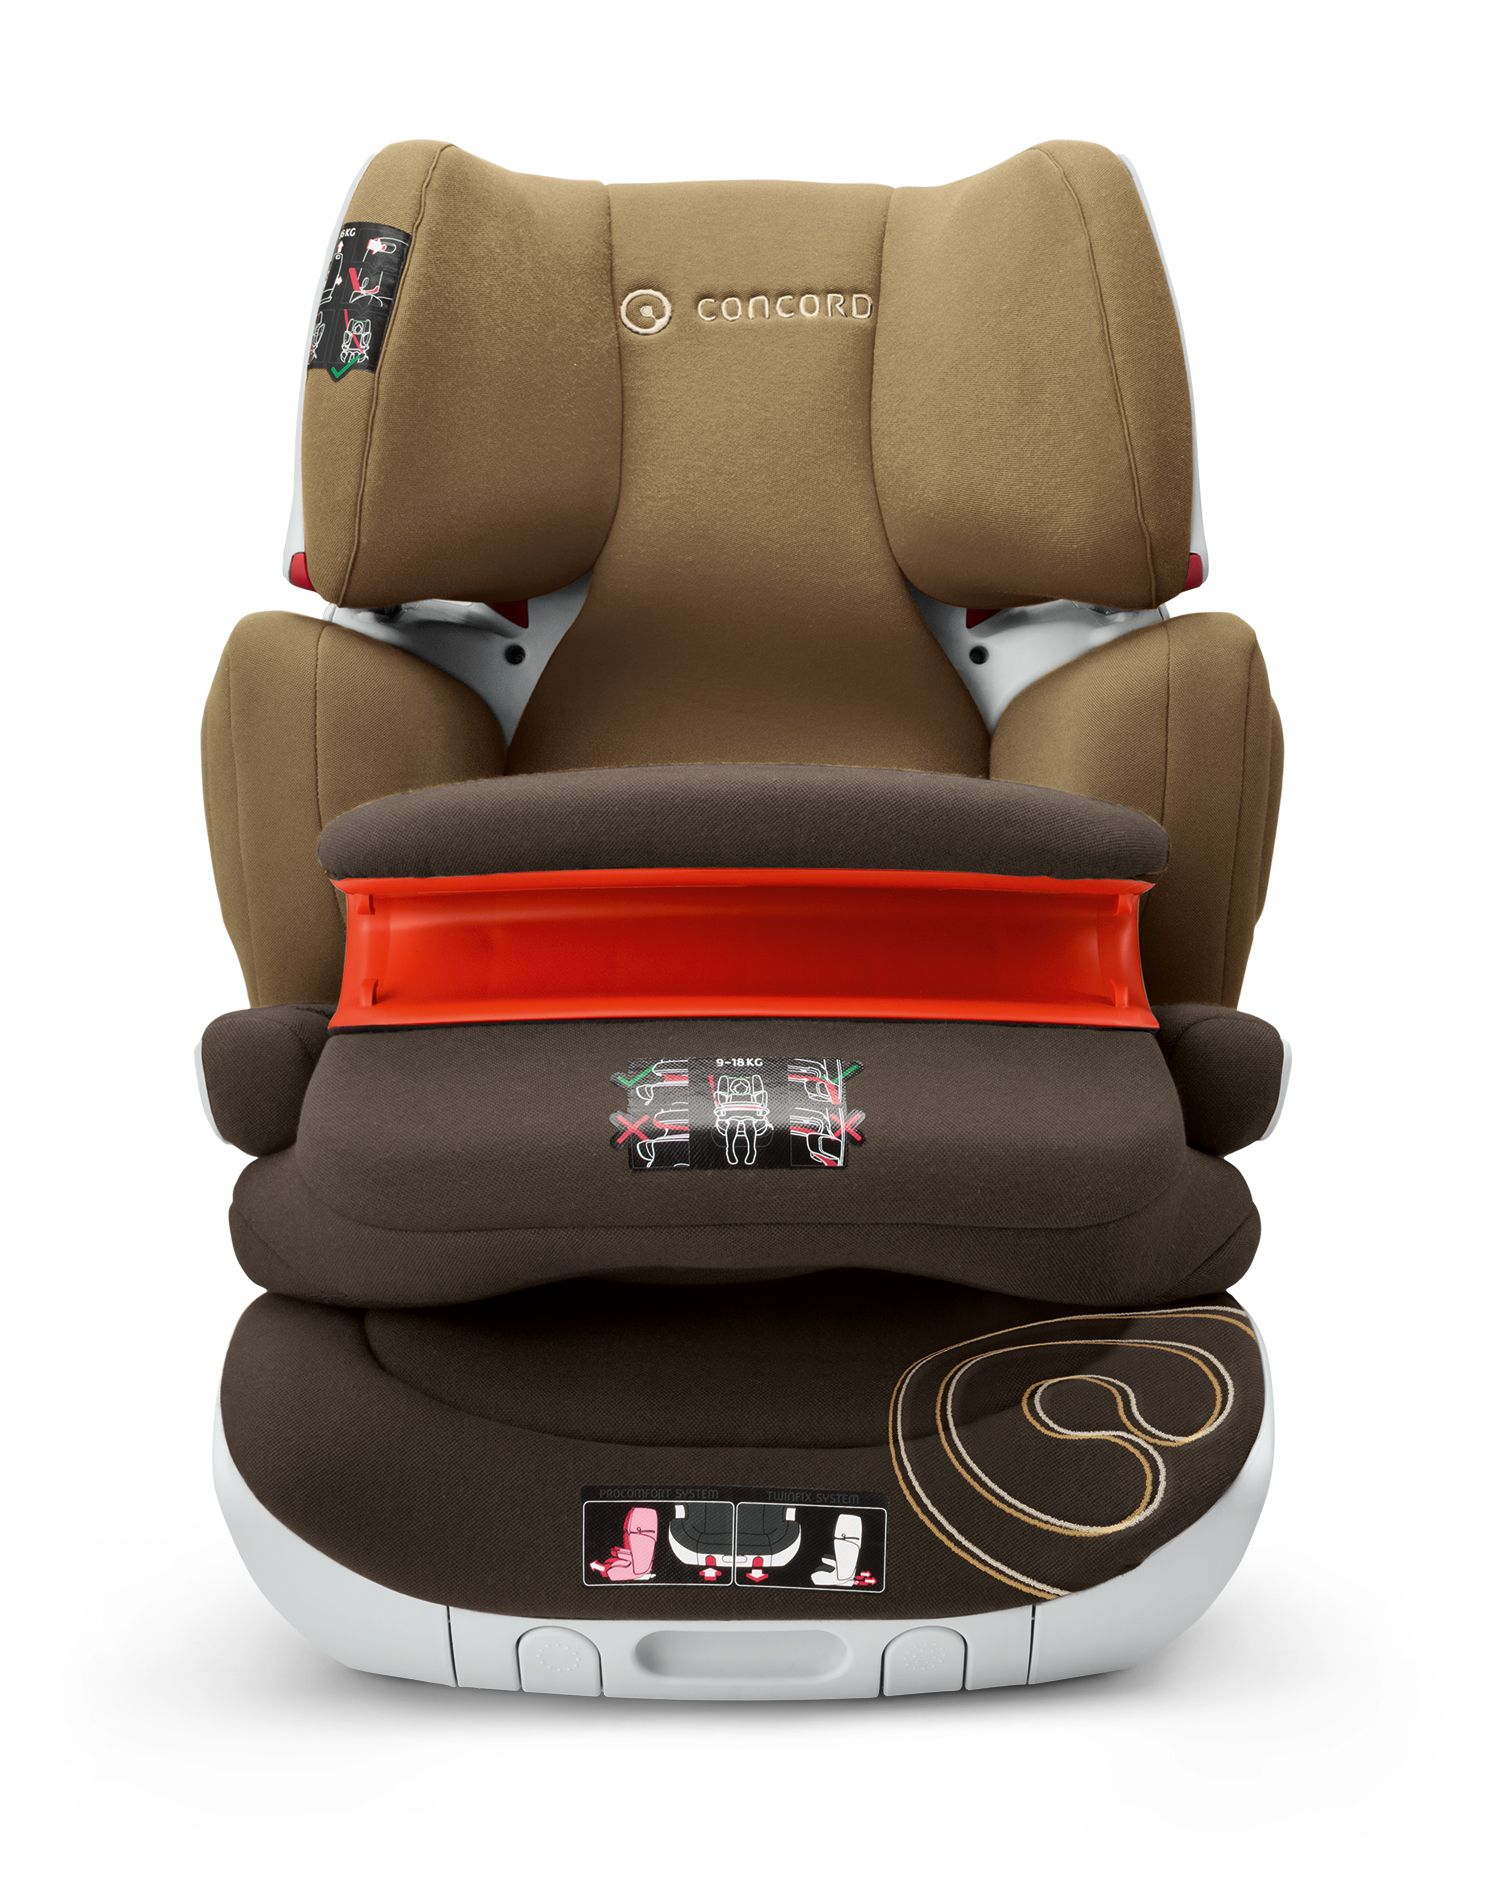 Concord baby car seats: model overview, features and reviews 3